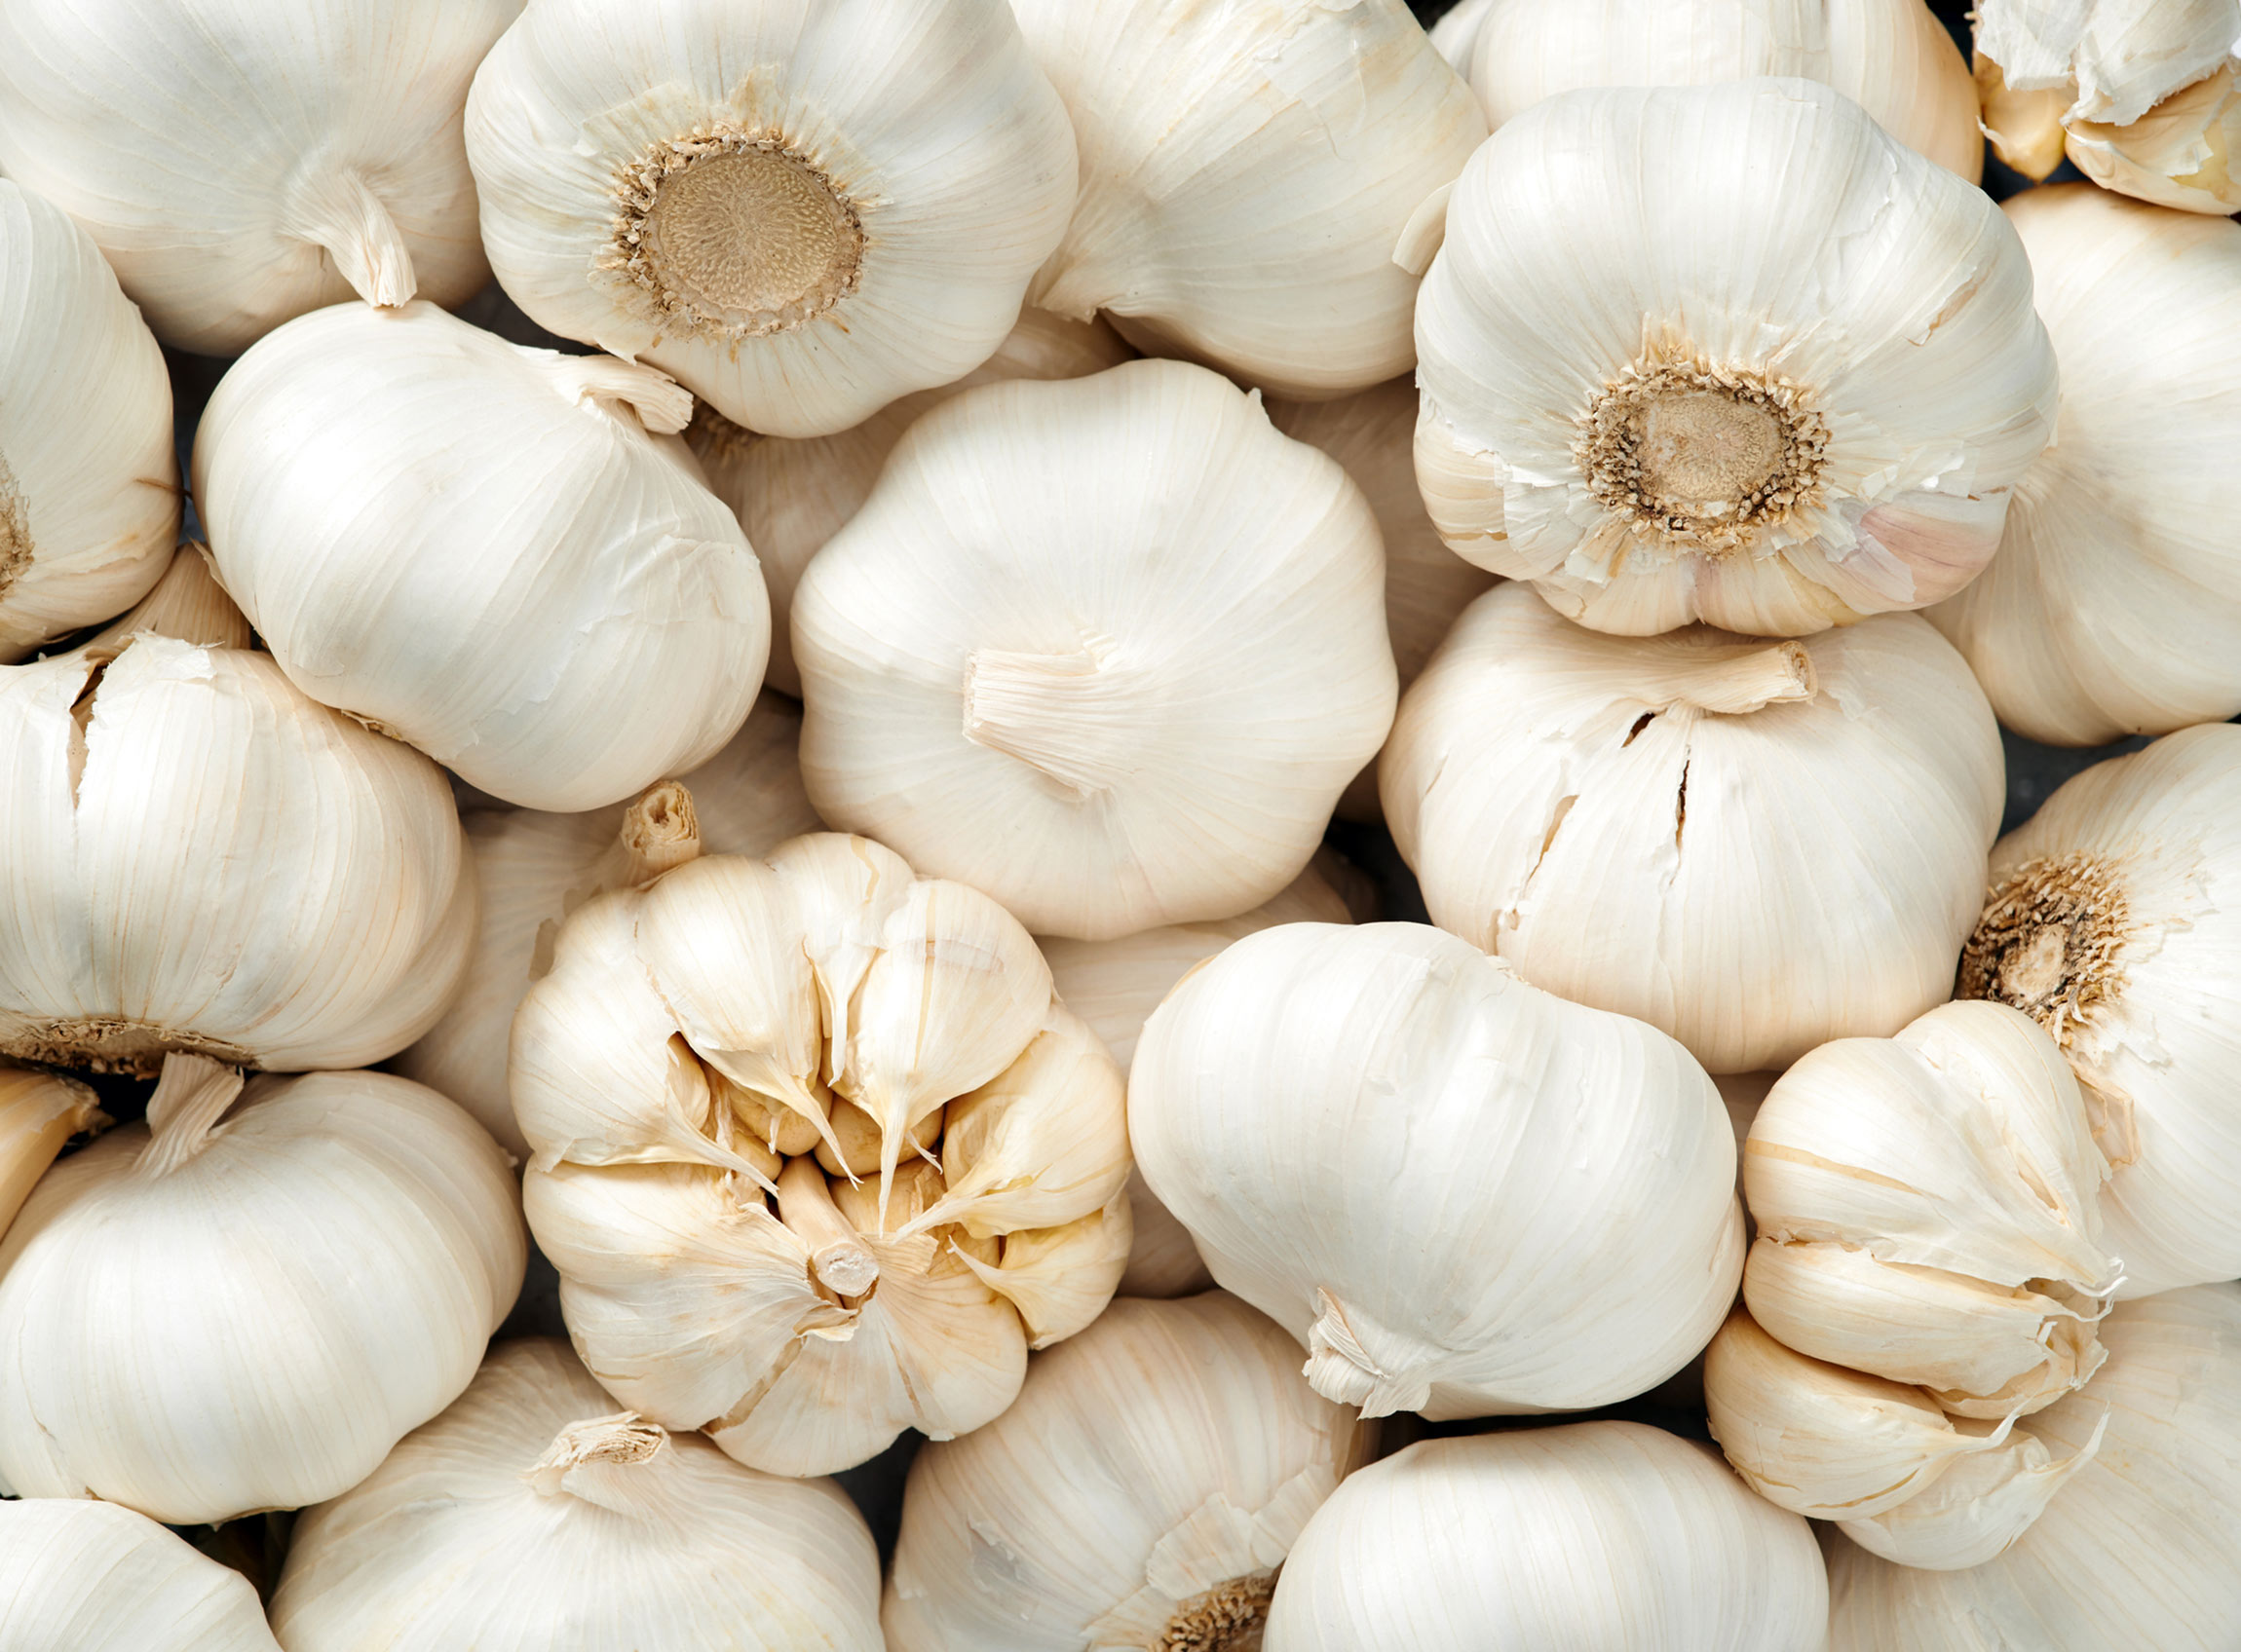 Diet for immunity: garlic